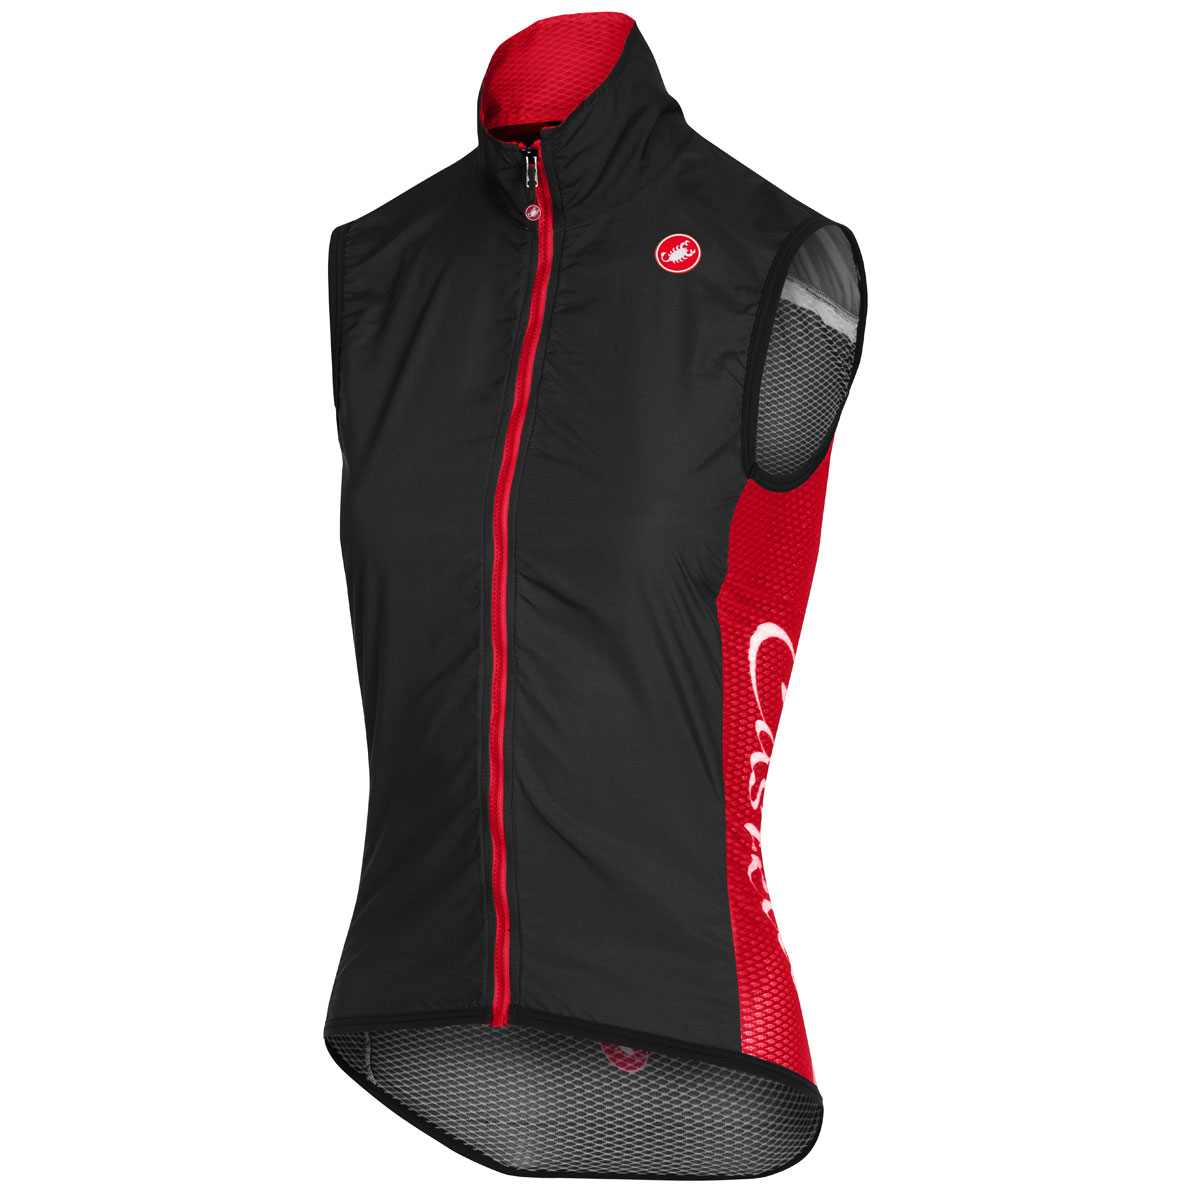 Donna Gilet Castelli Pro Light Wind - Nero